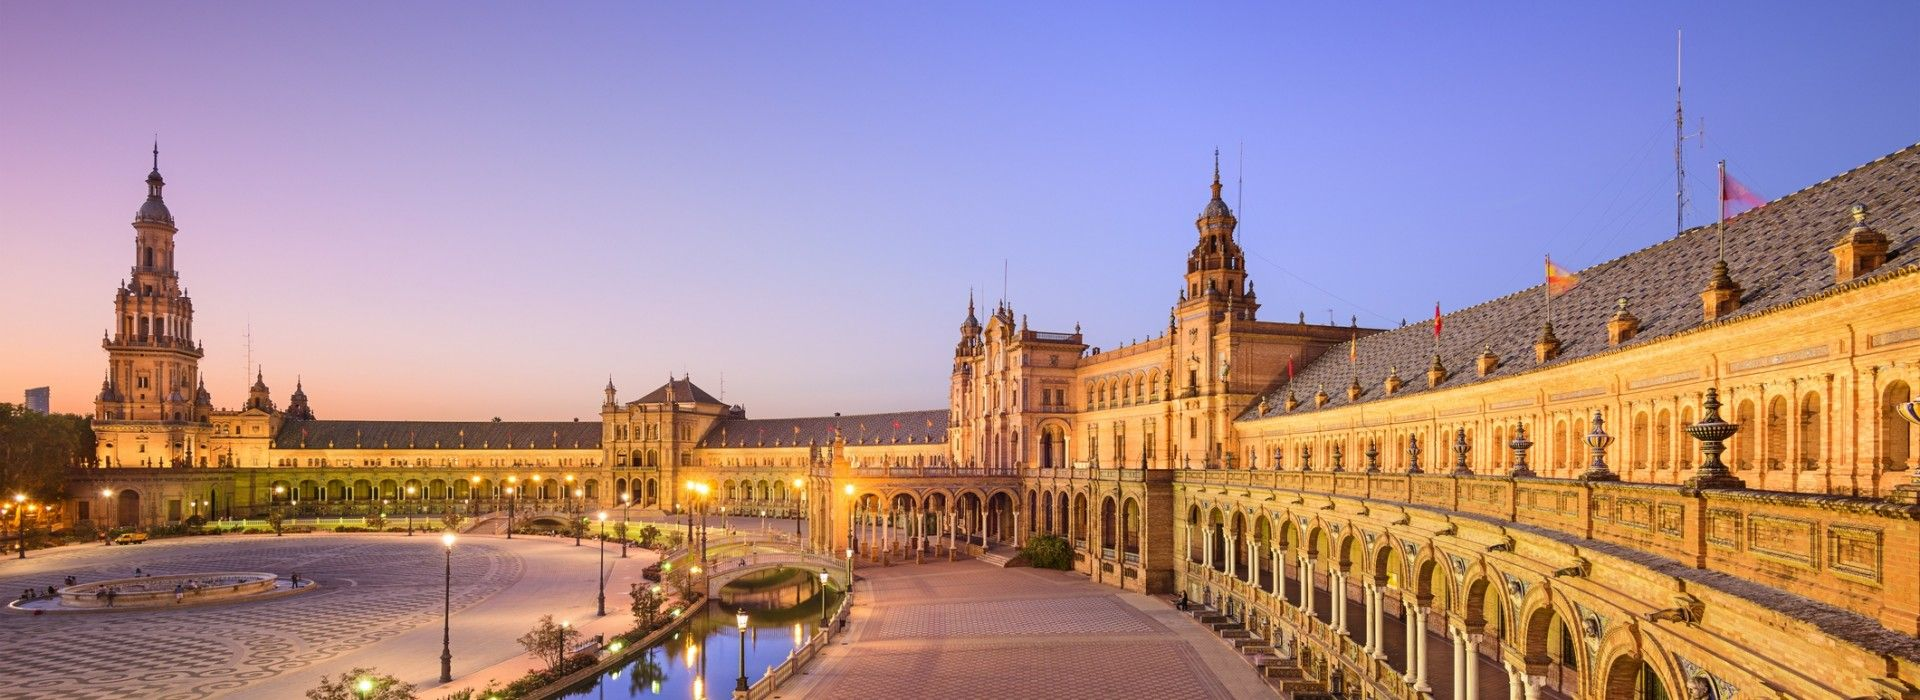 Sightseeing, attractions, culture and history Tours in Malaga